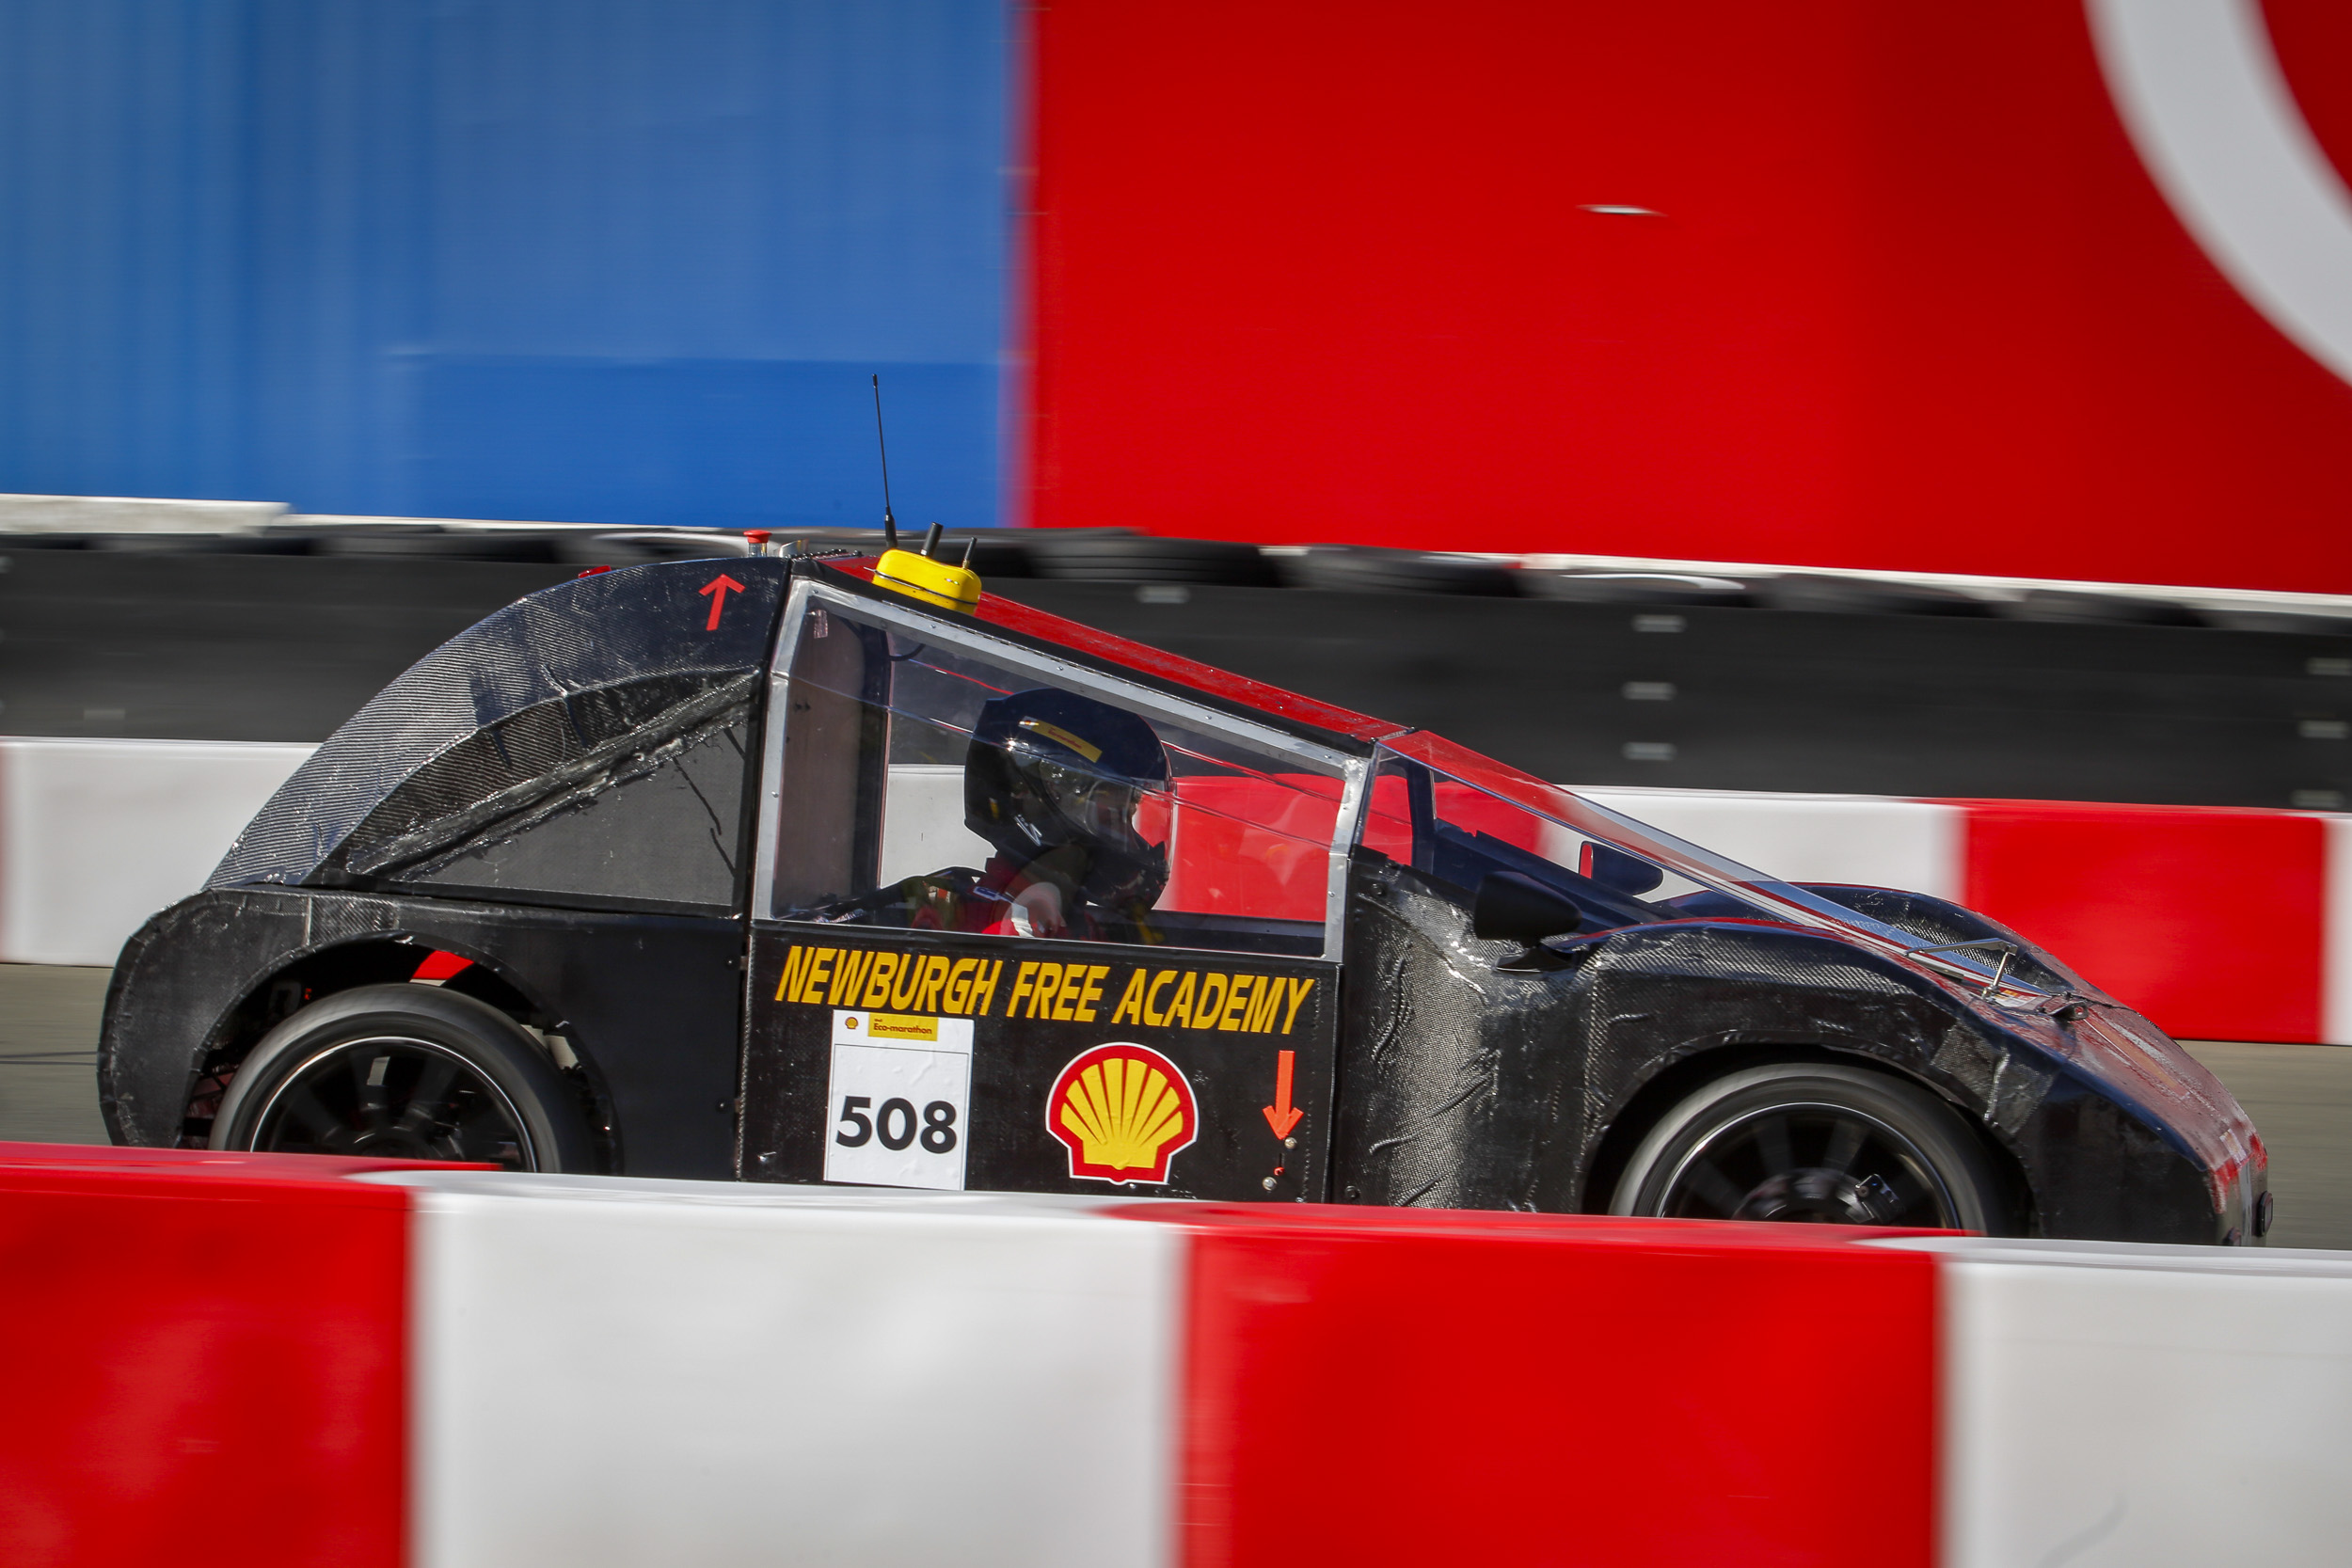 Team Mavericks with their vehicle the The Tank ,  #508,  from Newburgh Free Academy, Newburgh, New York , United States, competing under the UrbanConcept - Diesel category on the track during day three of Shell Make the Future at Sonoma Raceway, Saturday, April 21, 2018 in Sonoma, Calif.